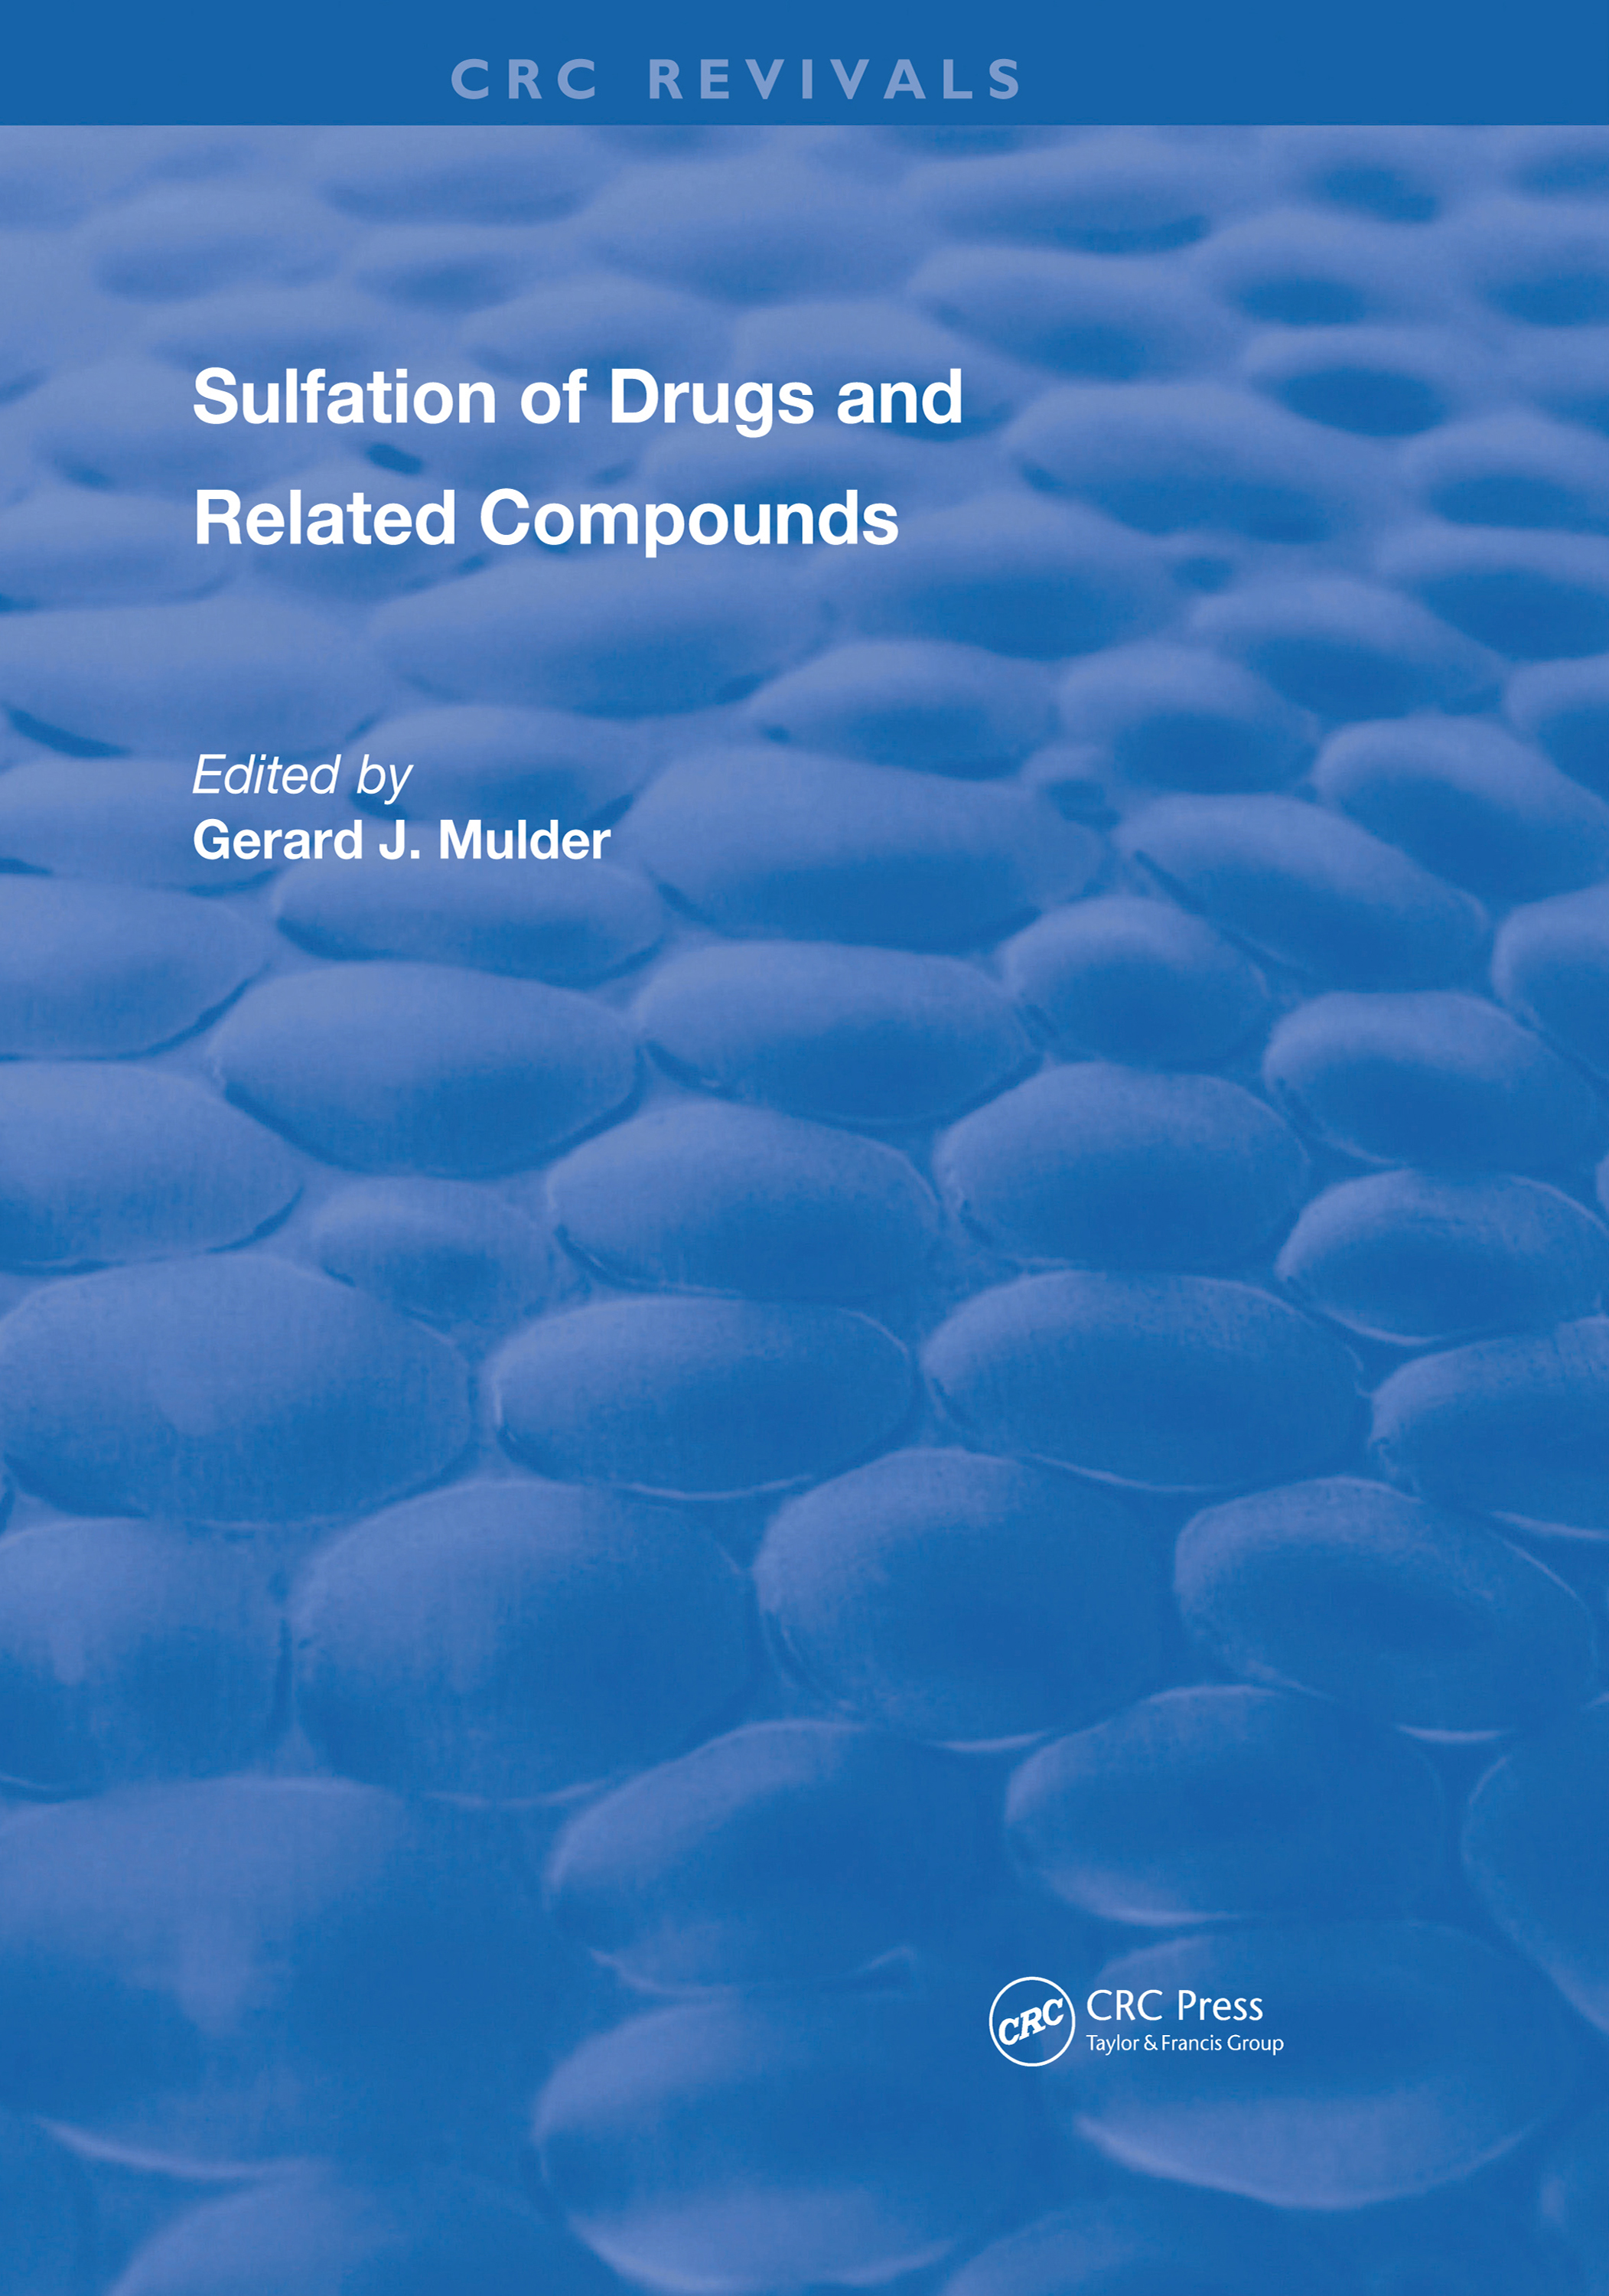 Sulfation in Vivo and in Isolated Intact Cell Preparations